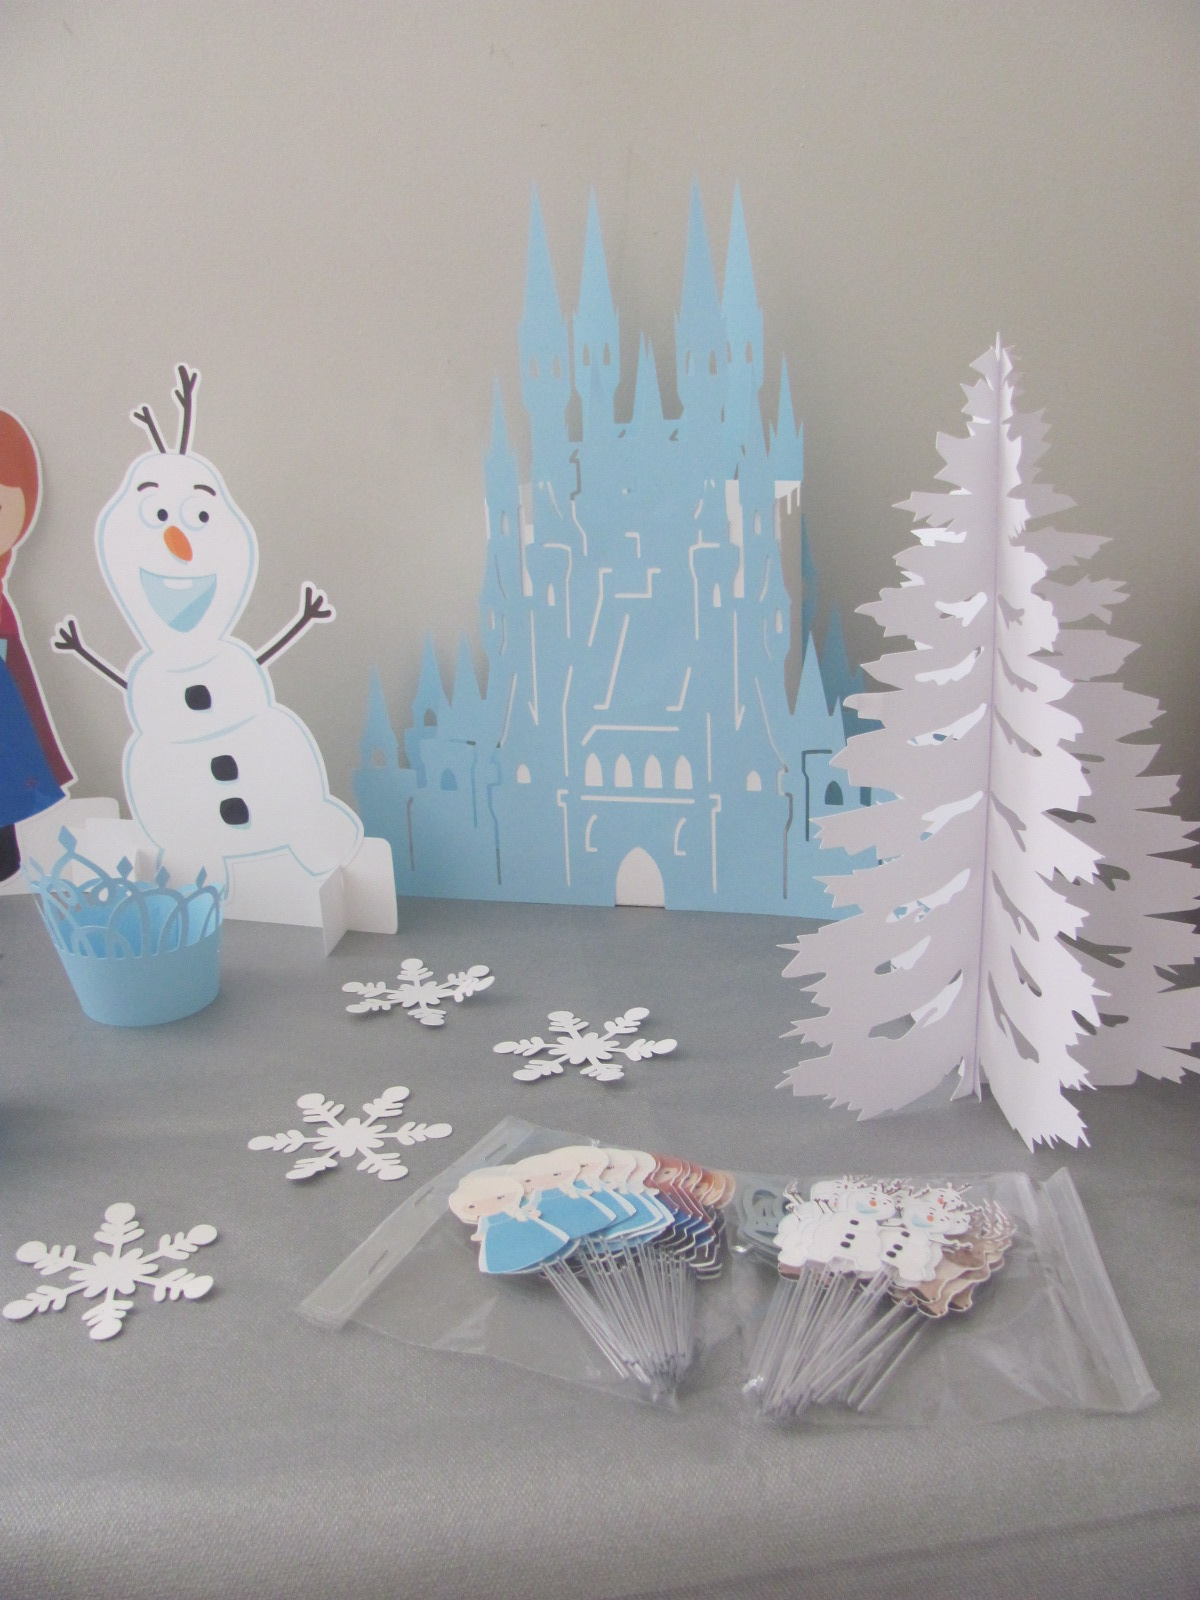 Disney FROZEN Party Ideas - My Sister's Suitcase - Packed